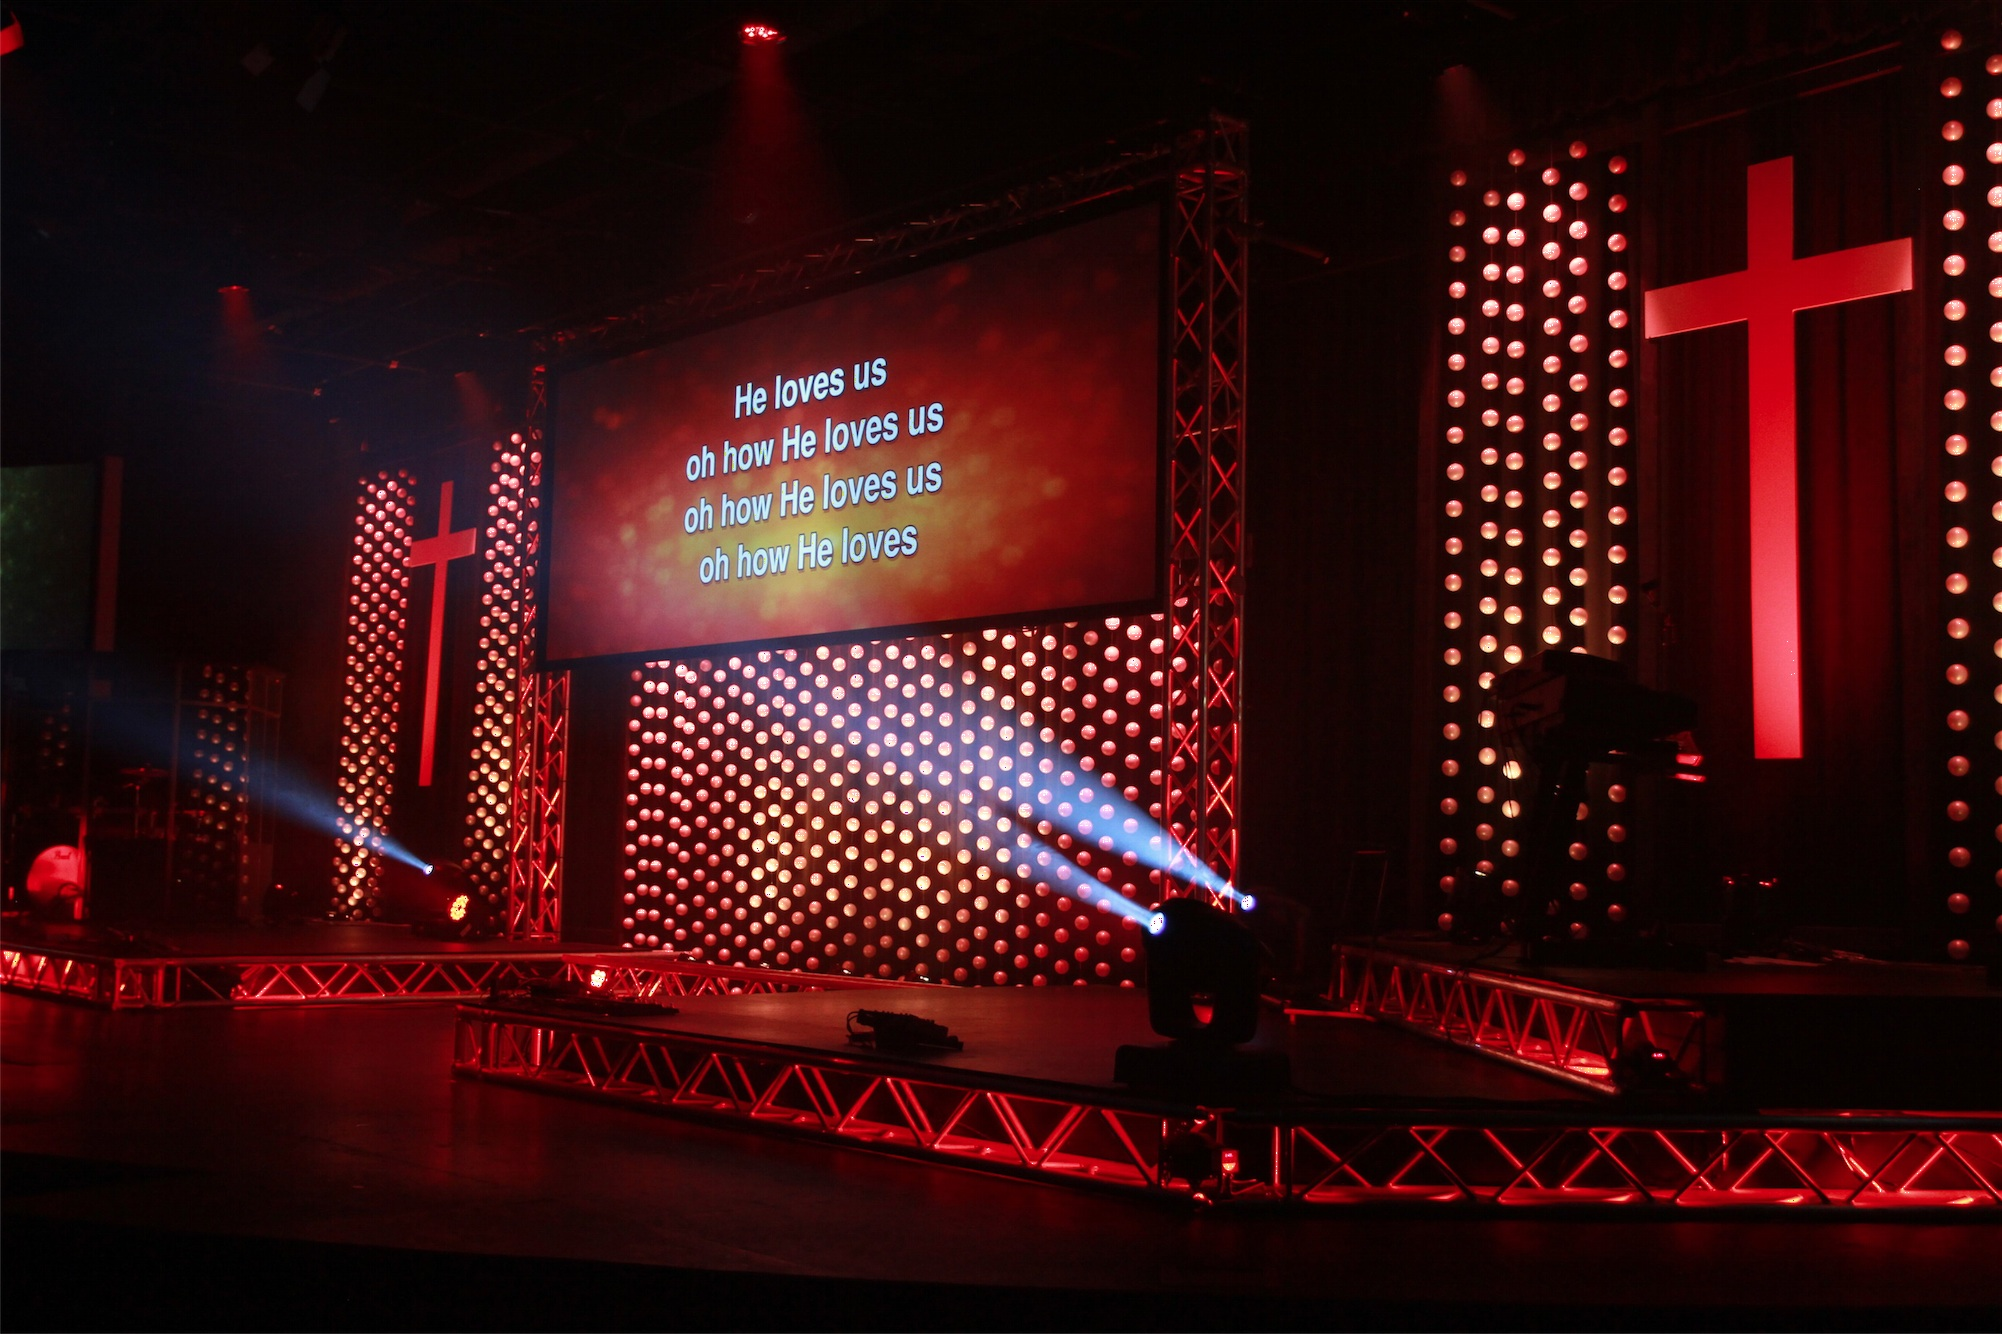 Throwback We Ll Have A Ball Church Stage Design Ideas Scenic Sets And Stage Design Ideas From Churches Around The Globe